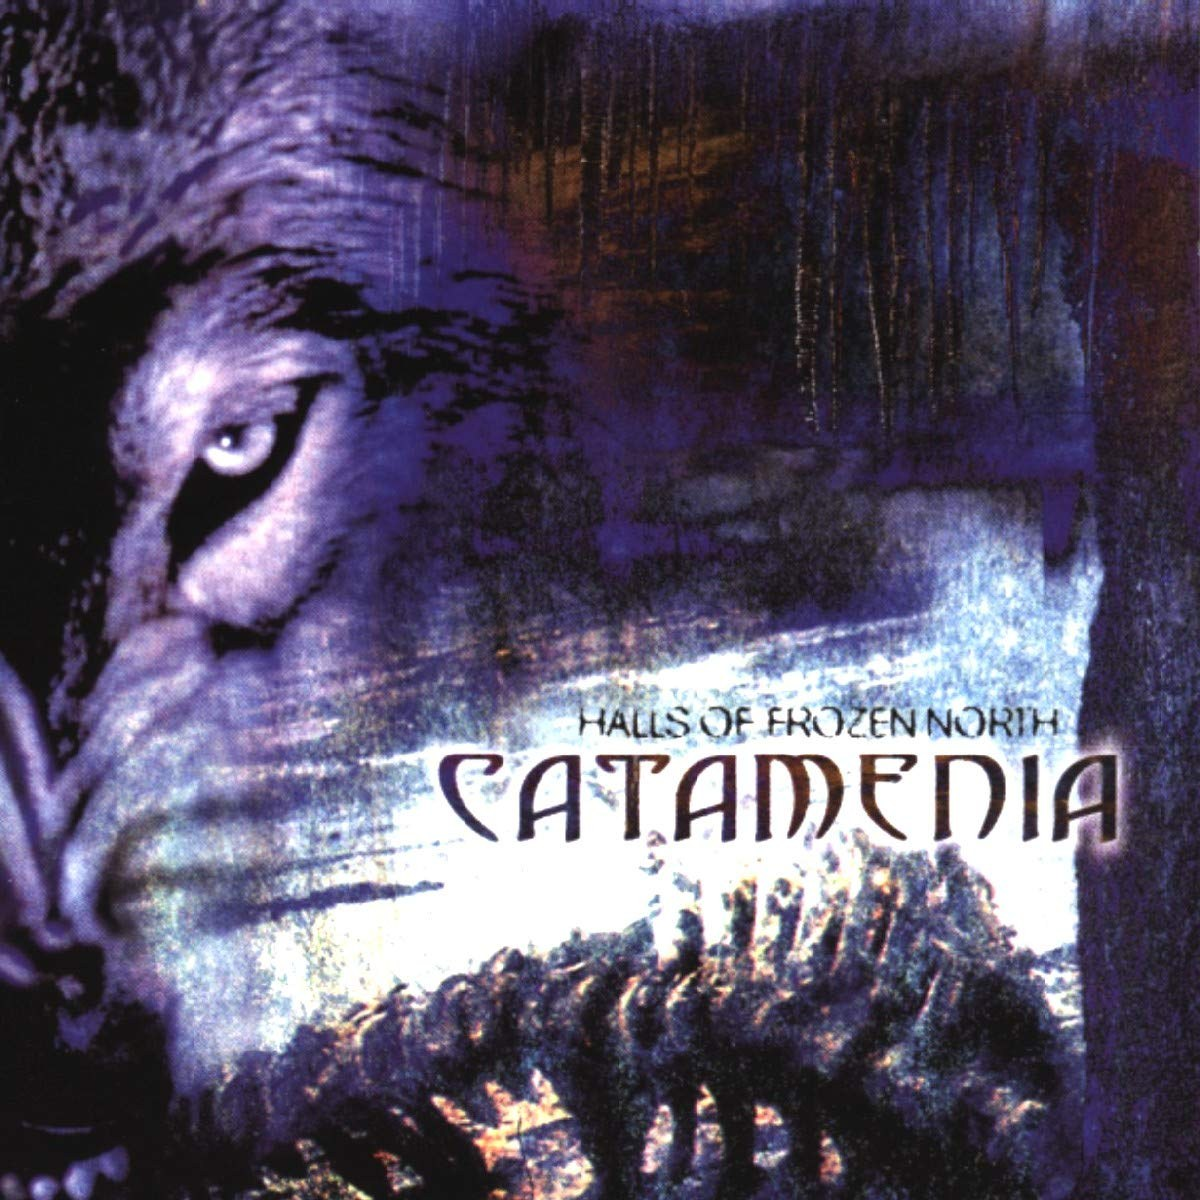 Review for Catamenia - Halls of Frozen North